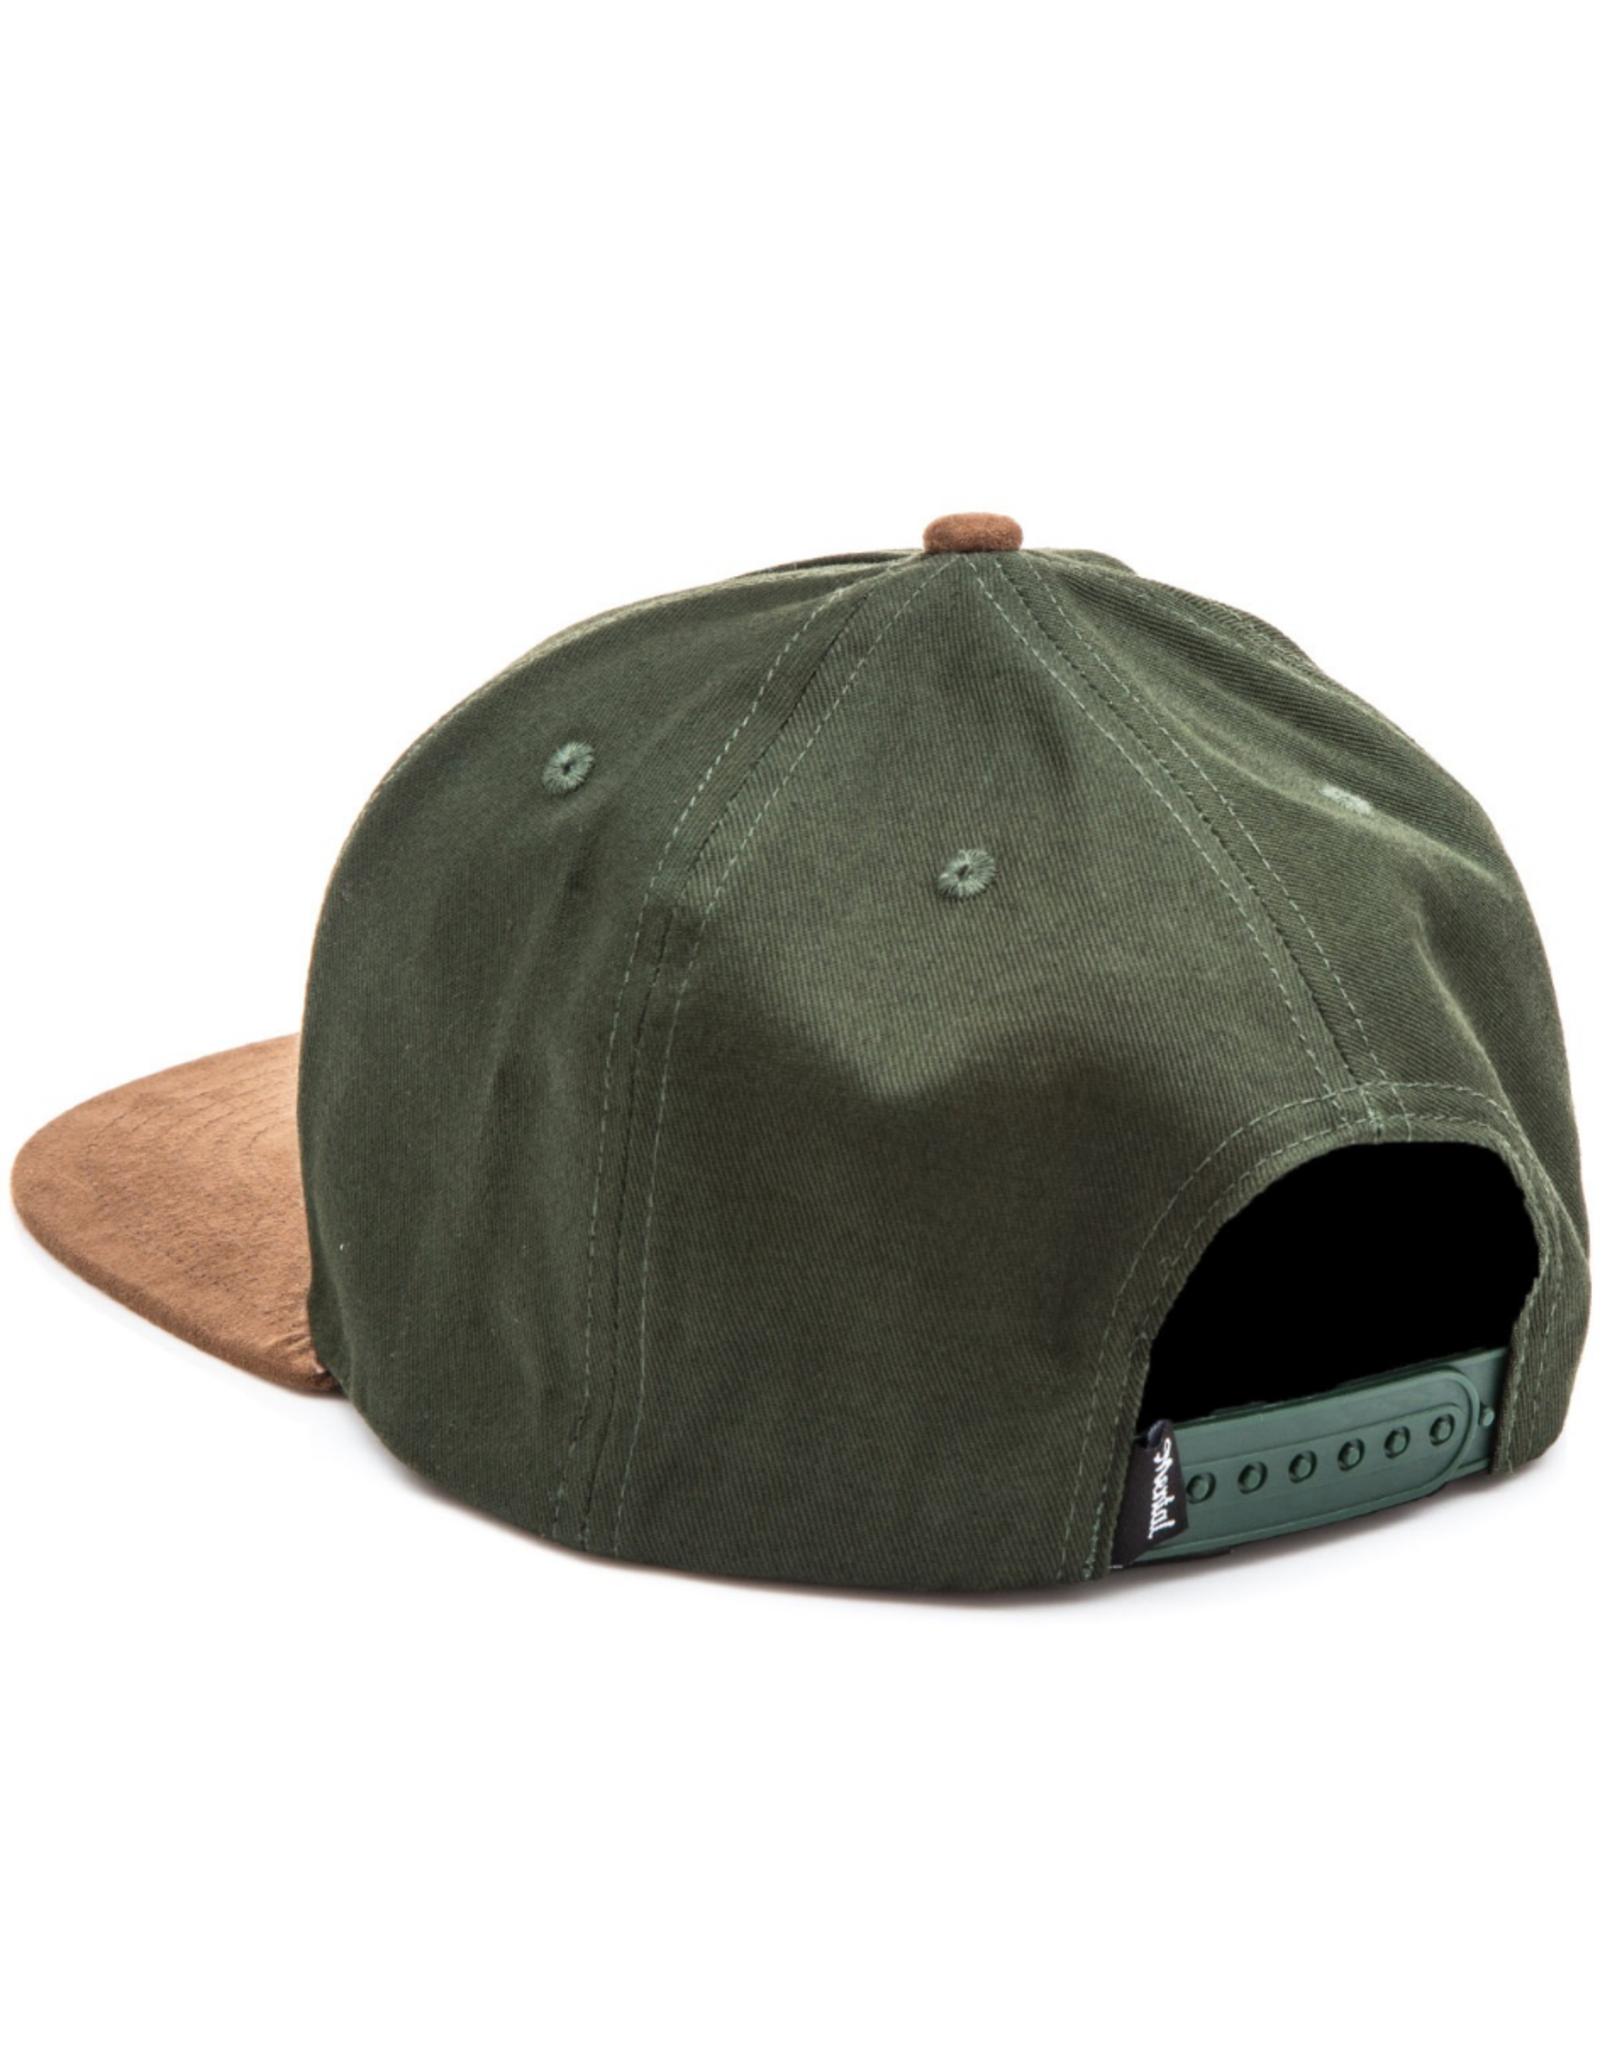 Skate Mental Don't Get Lost Snapback - Green/Brown